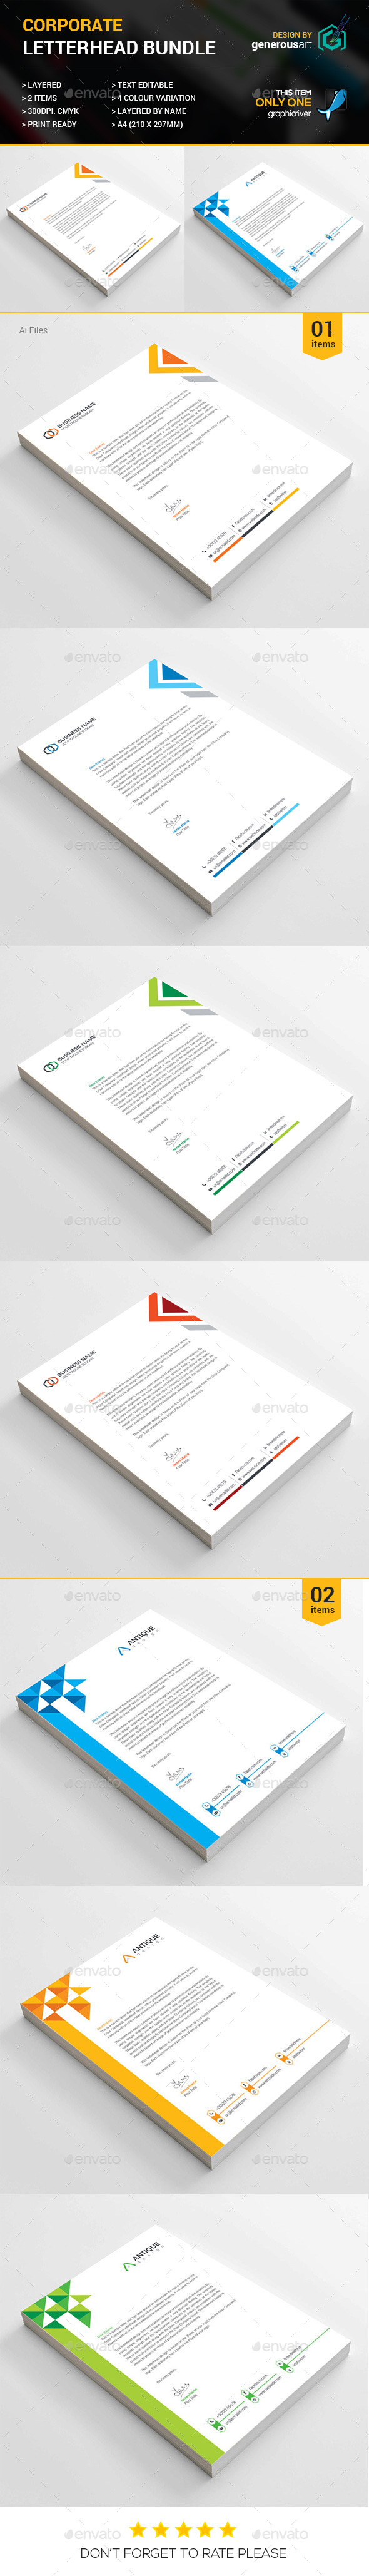 Letterhead Bundle 2 in 1_vol.2 - Stationery Print Templates